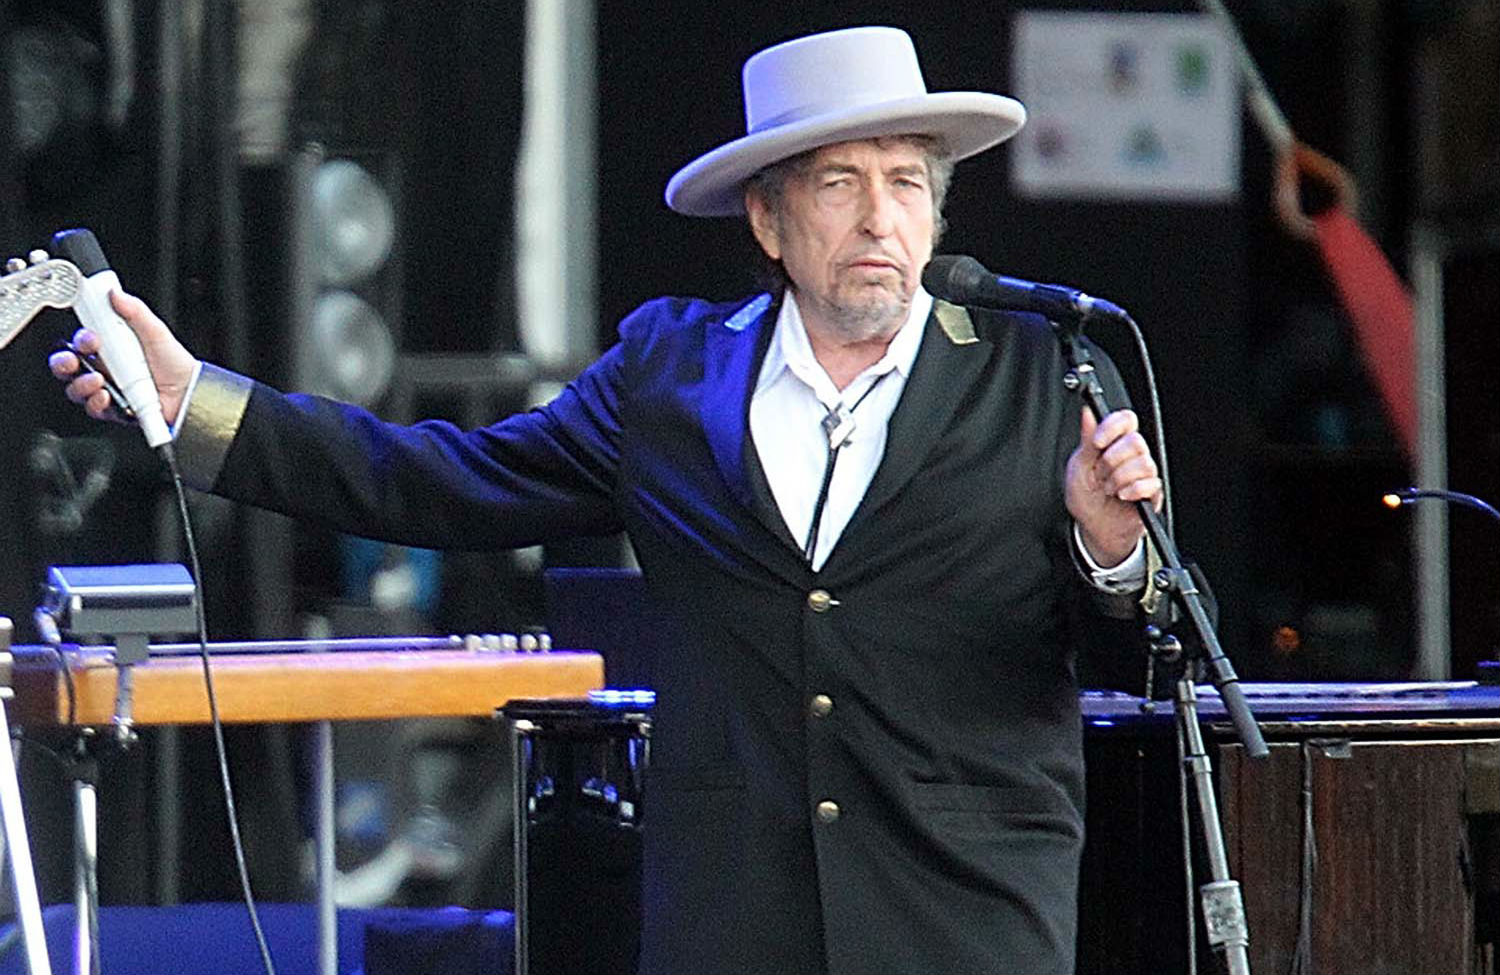 Bob-Dylan-performing-in-Carhaix-France-2012